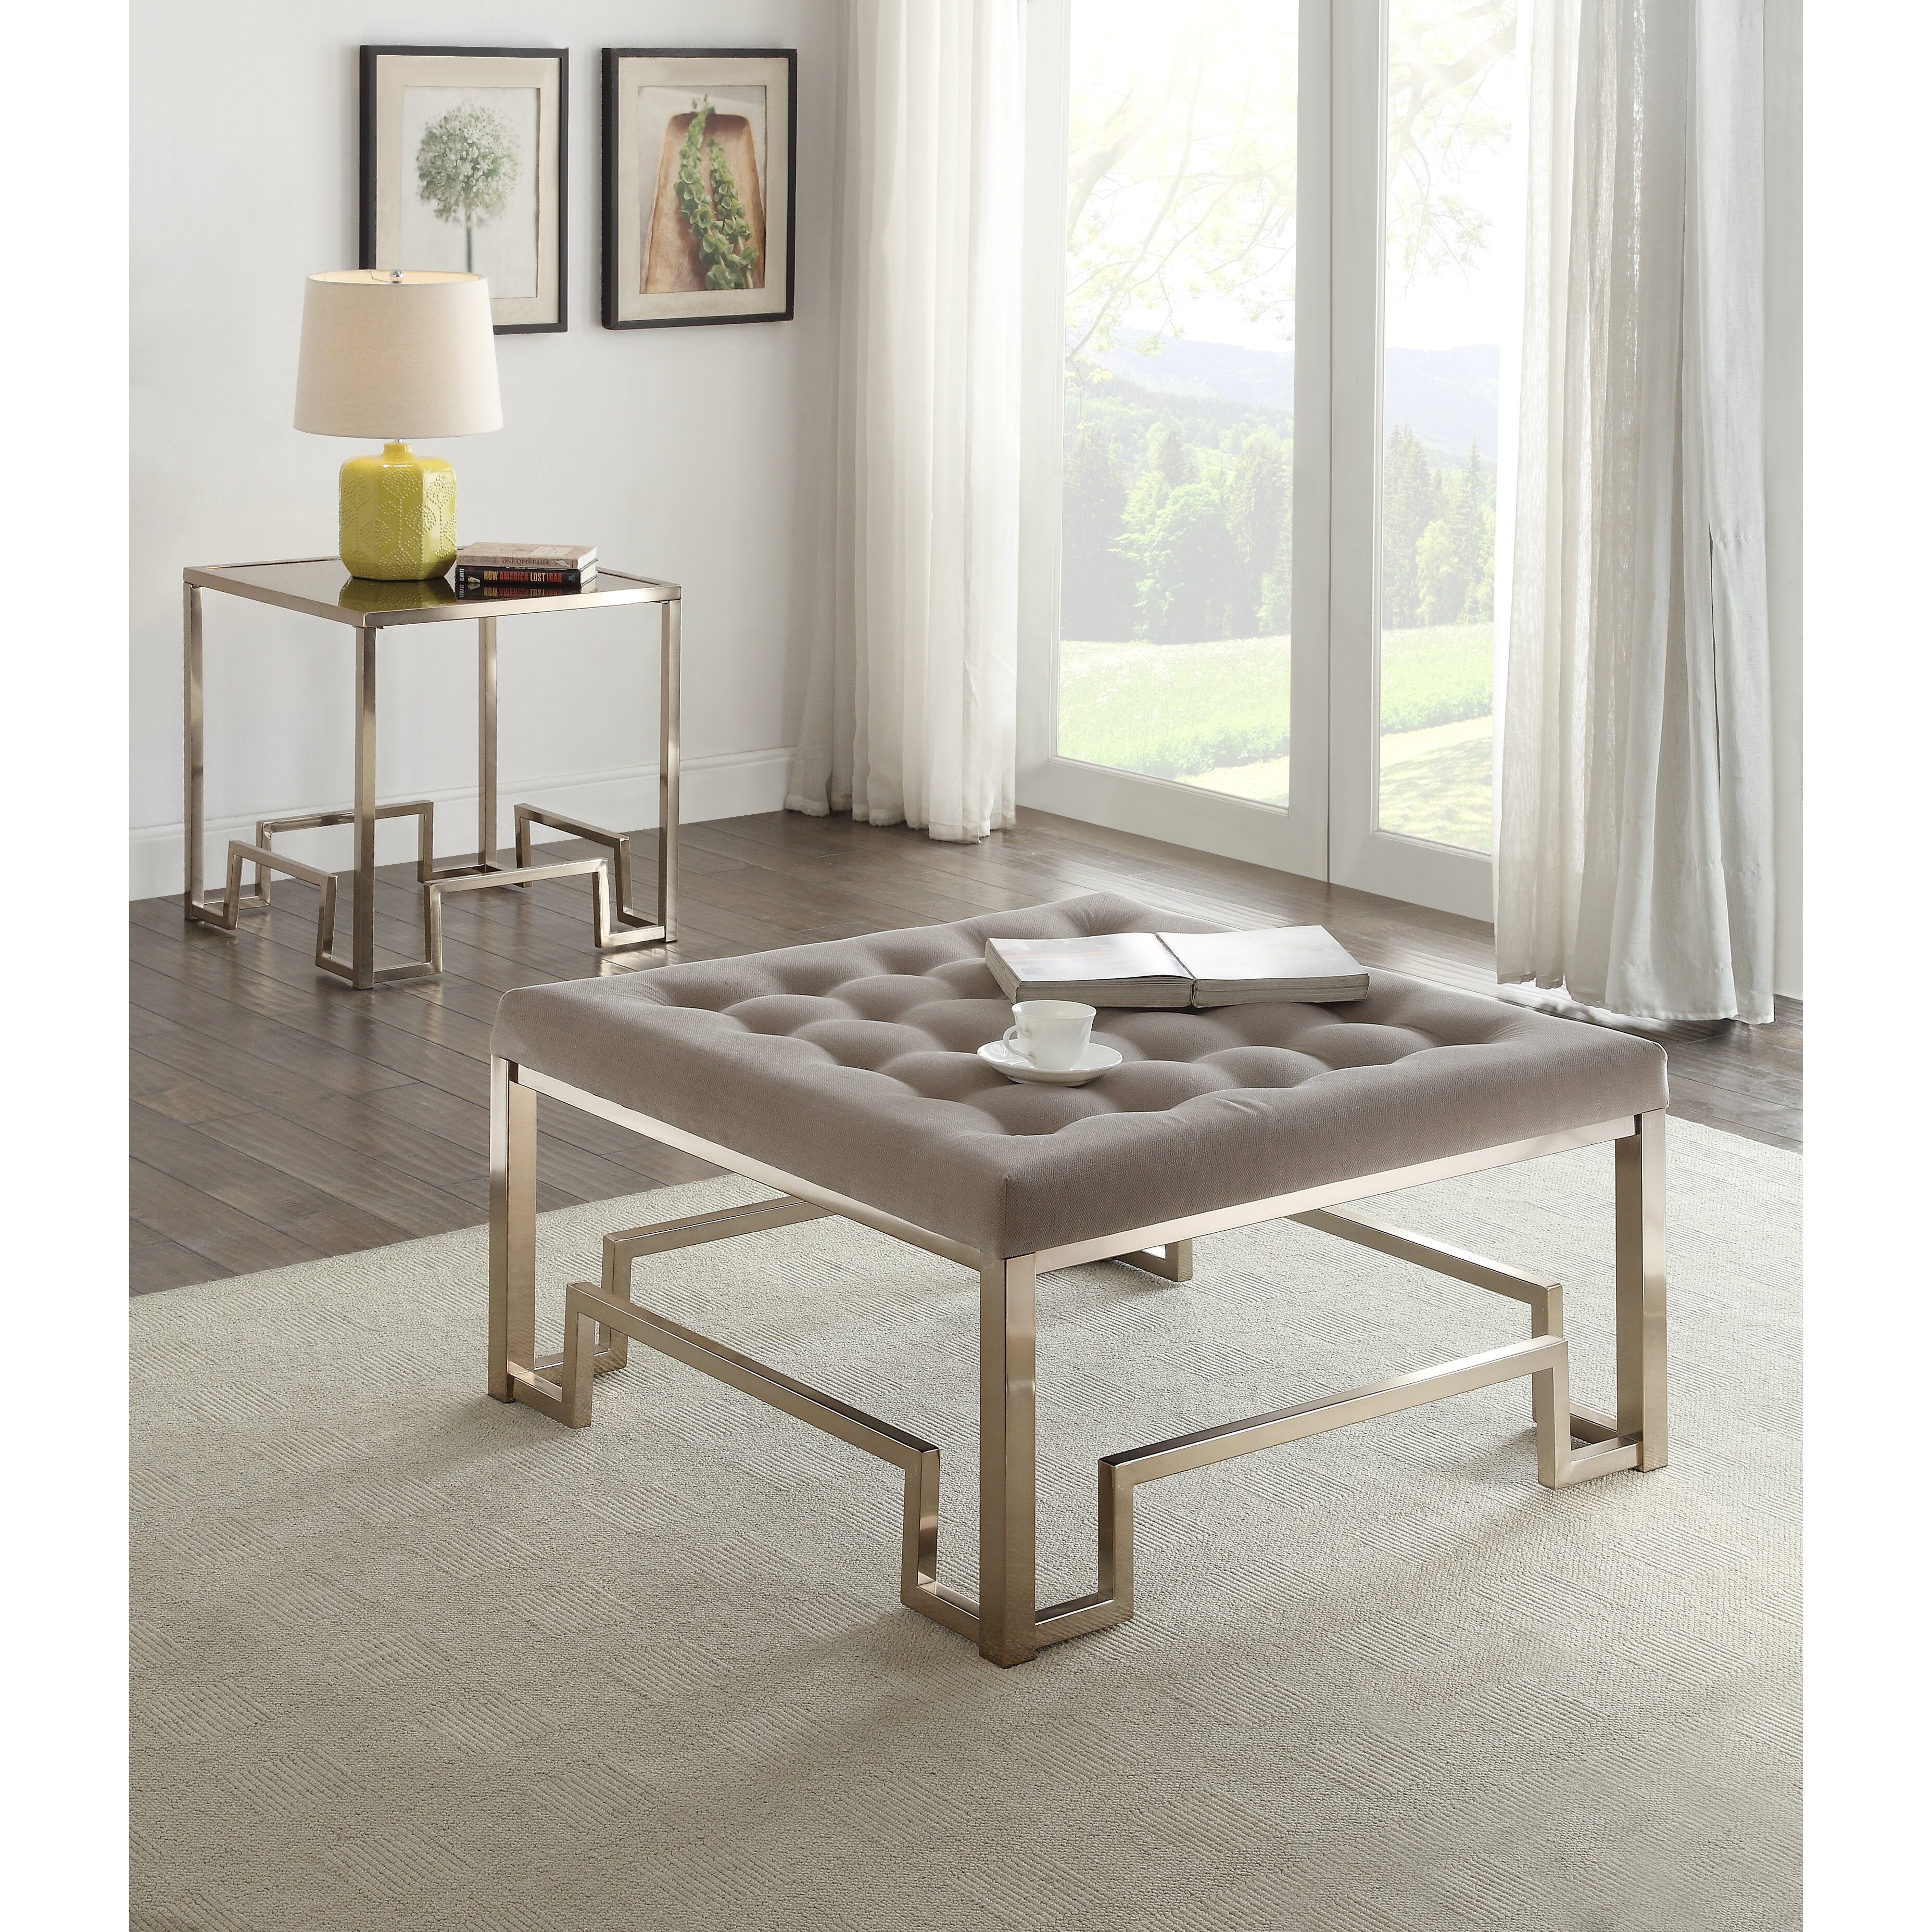 Coffee Table With Fabric: ACME Furniture Damien Fabric Coffee Table